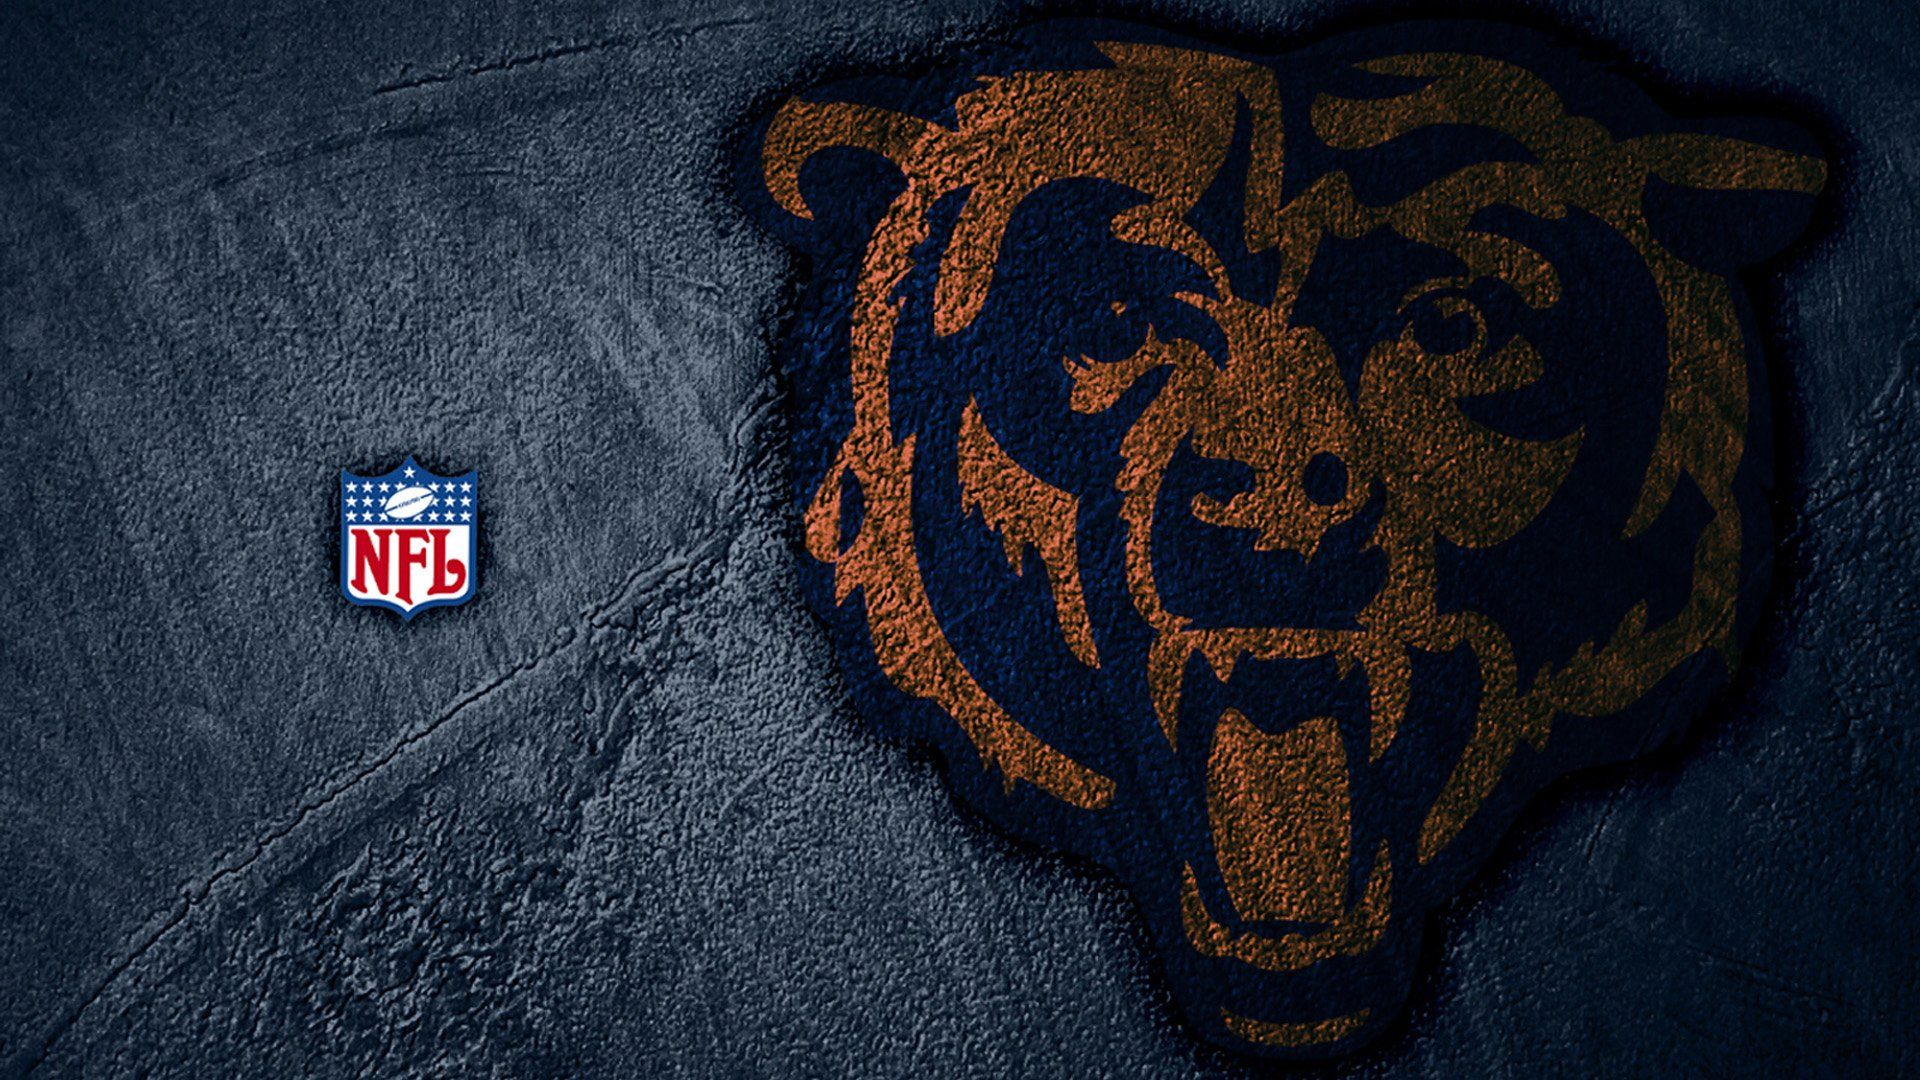 Get ready for NFL Season Pass 2019 Bears vs Packers NFL